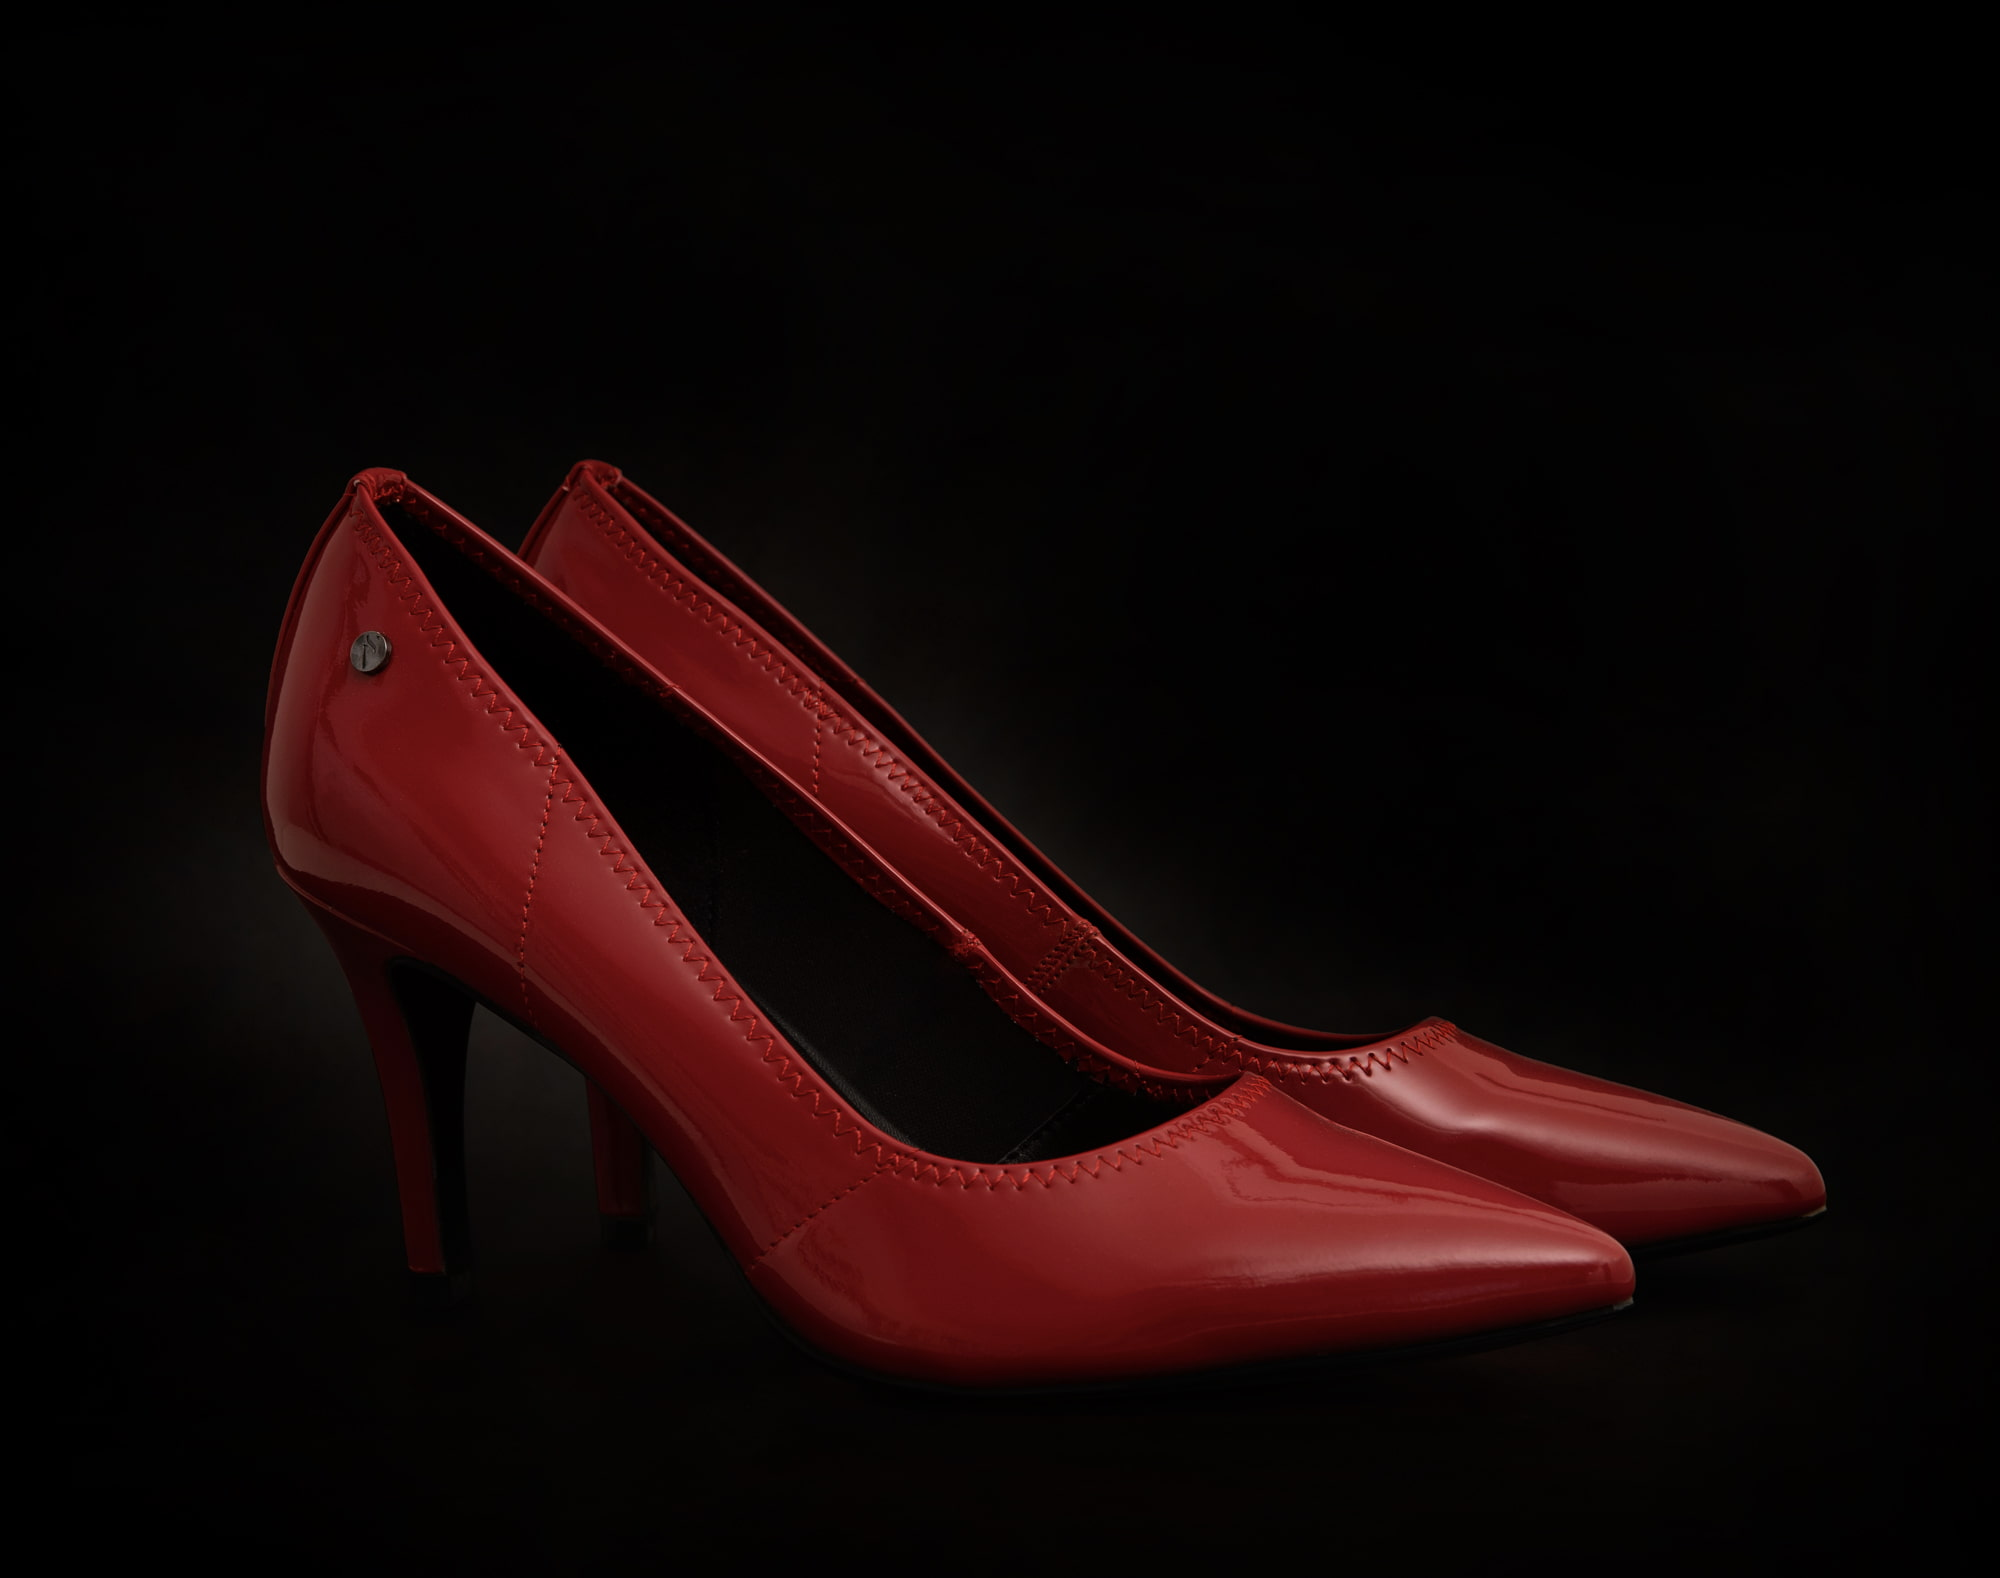 red pumps with black background